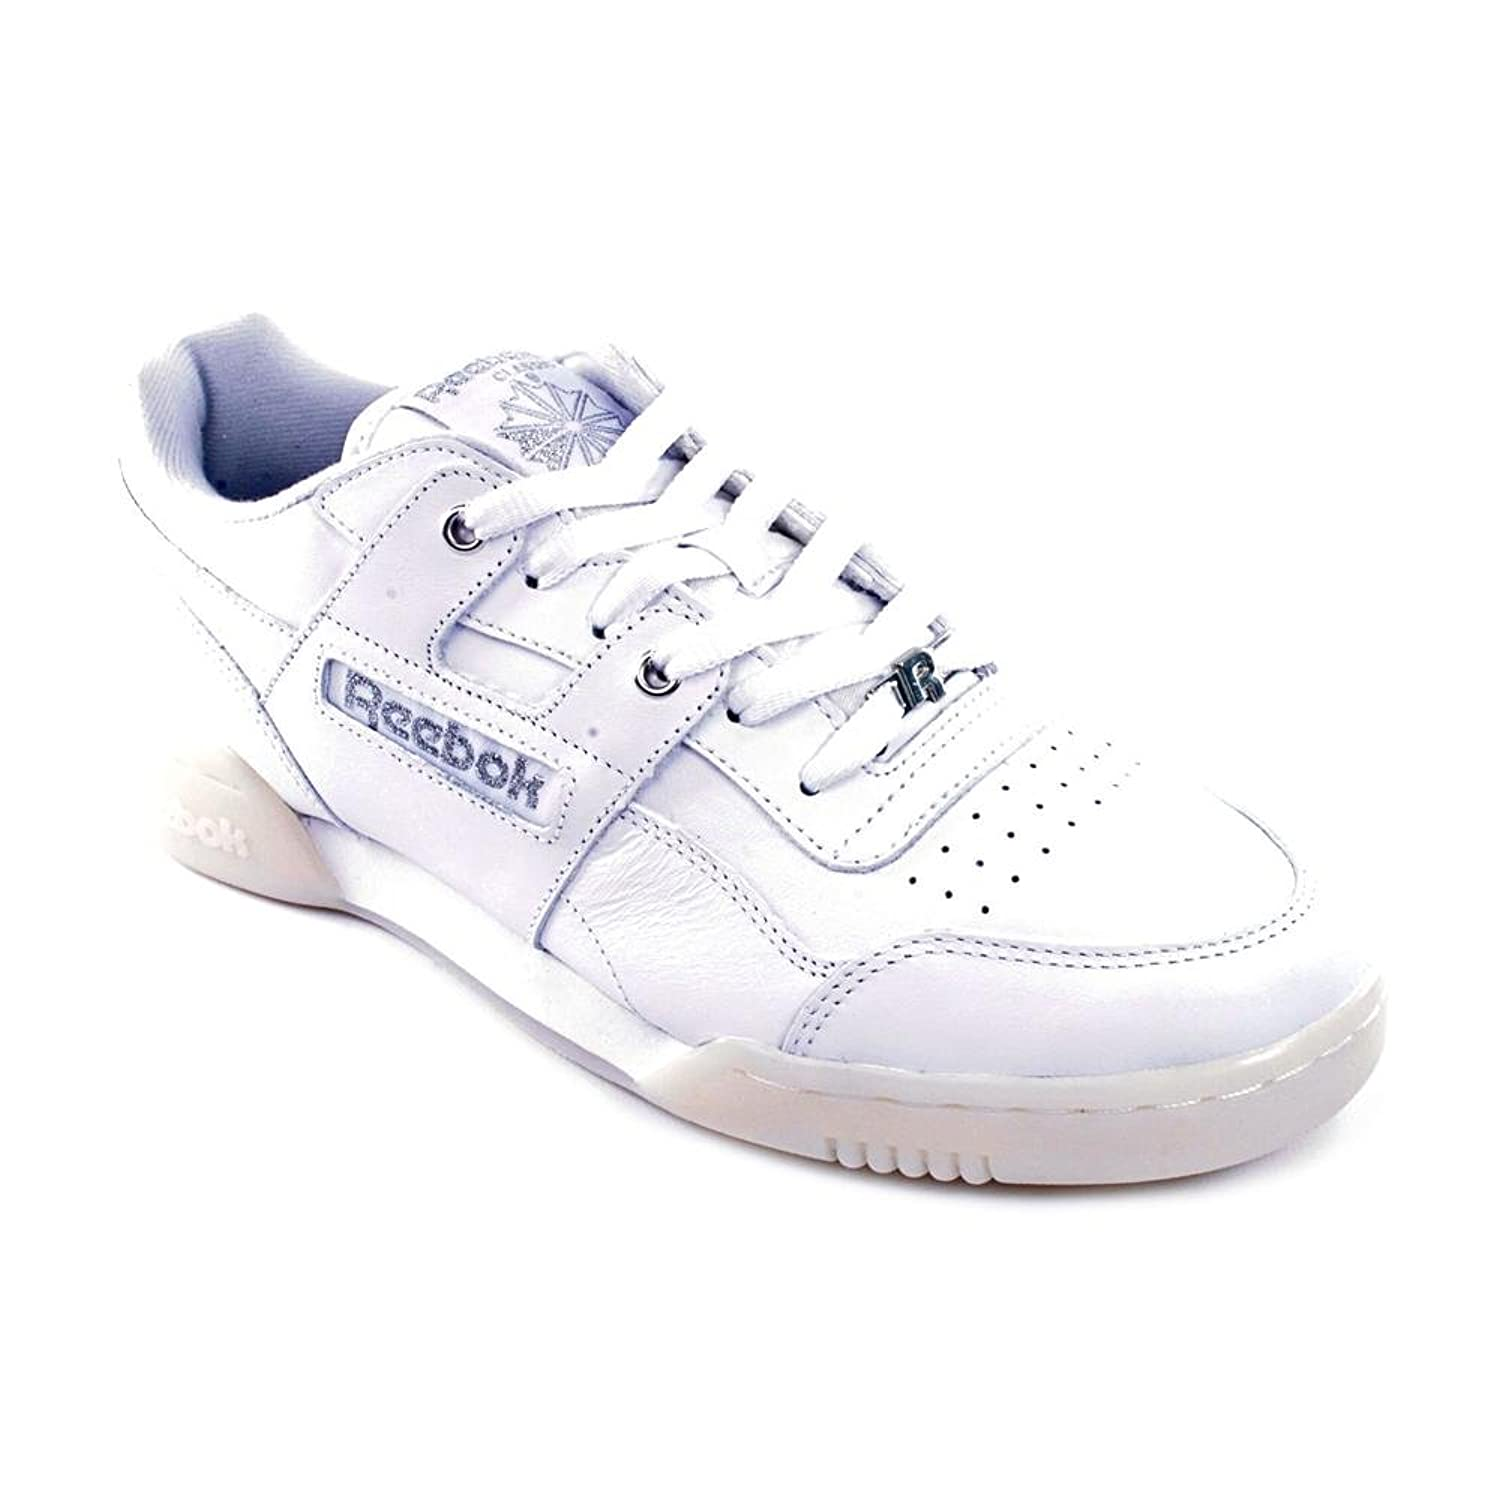 Reebok Classics Workout Plus Men's Leather Trainers Shoes пуховик reebok classics reebok classics re005emuot67